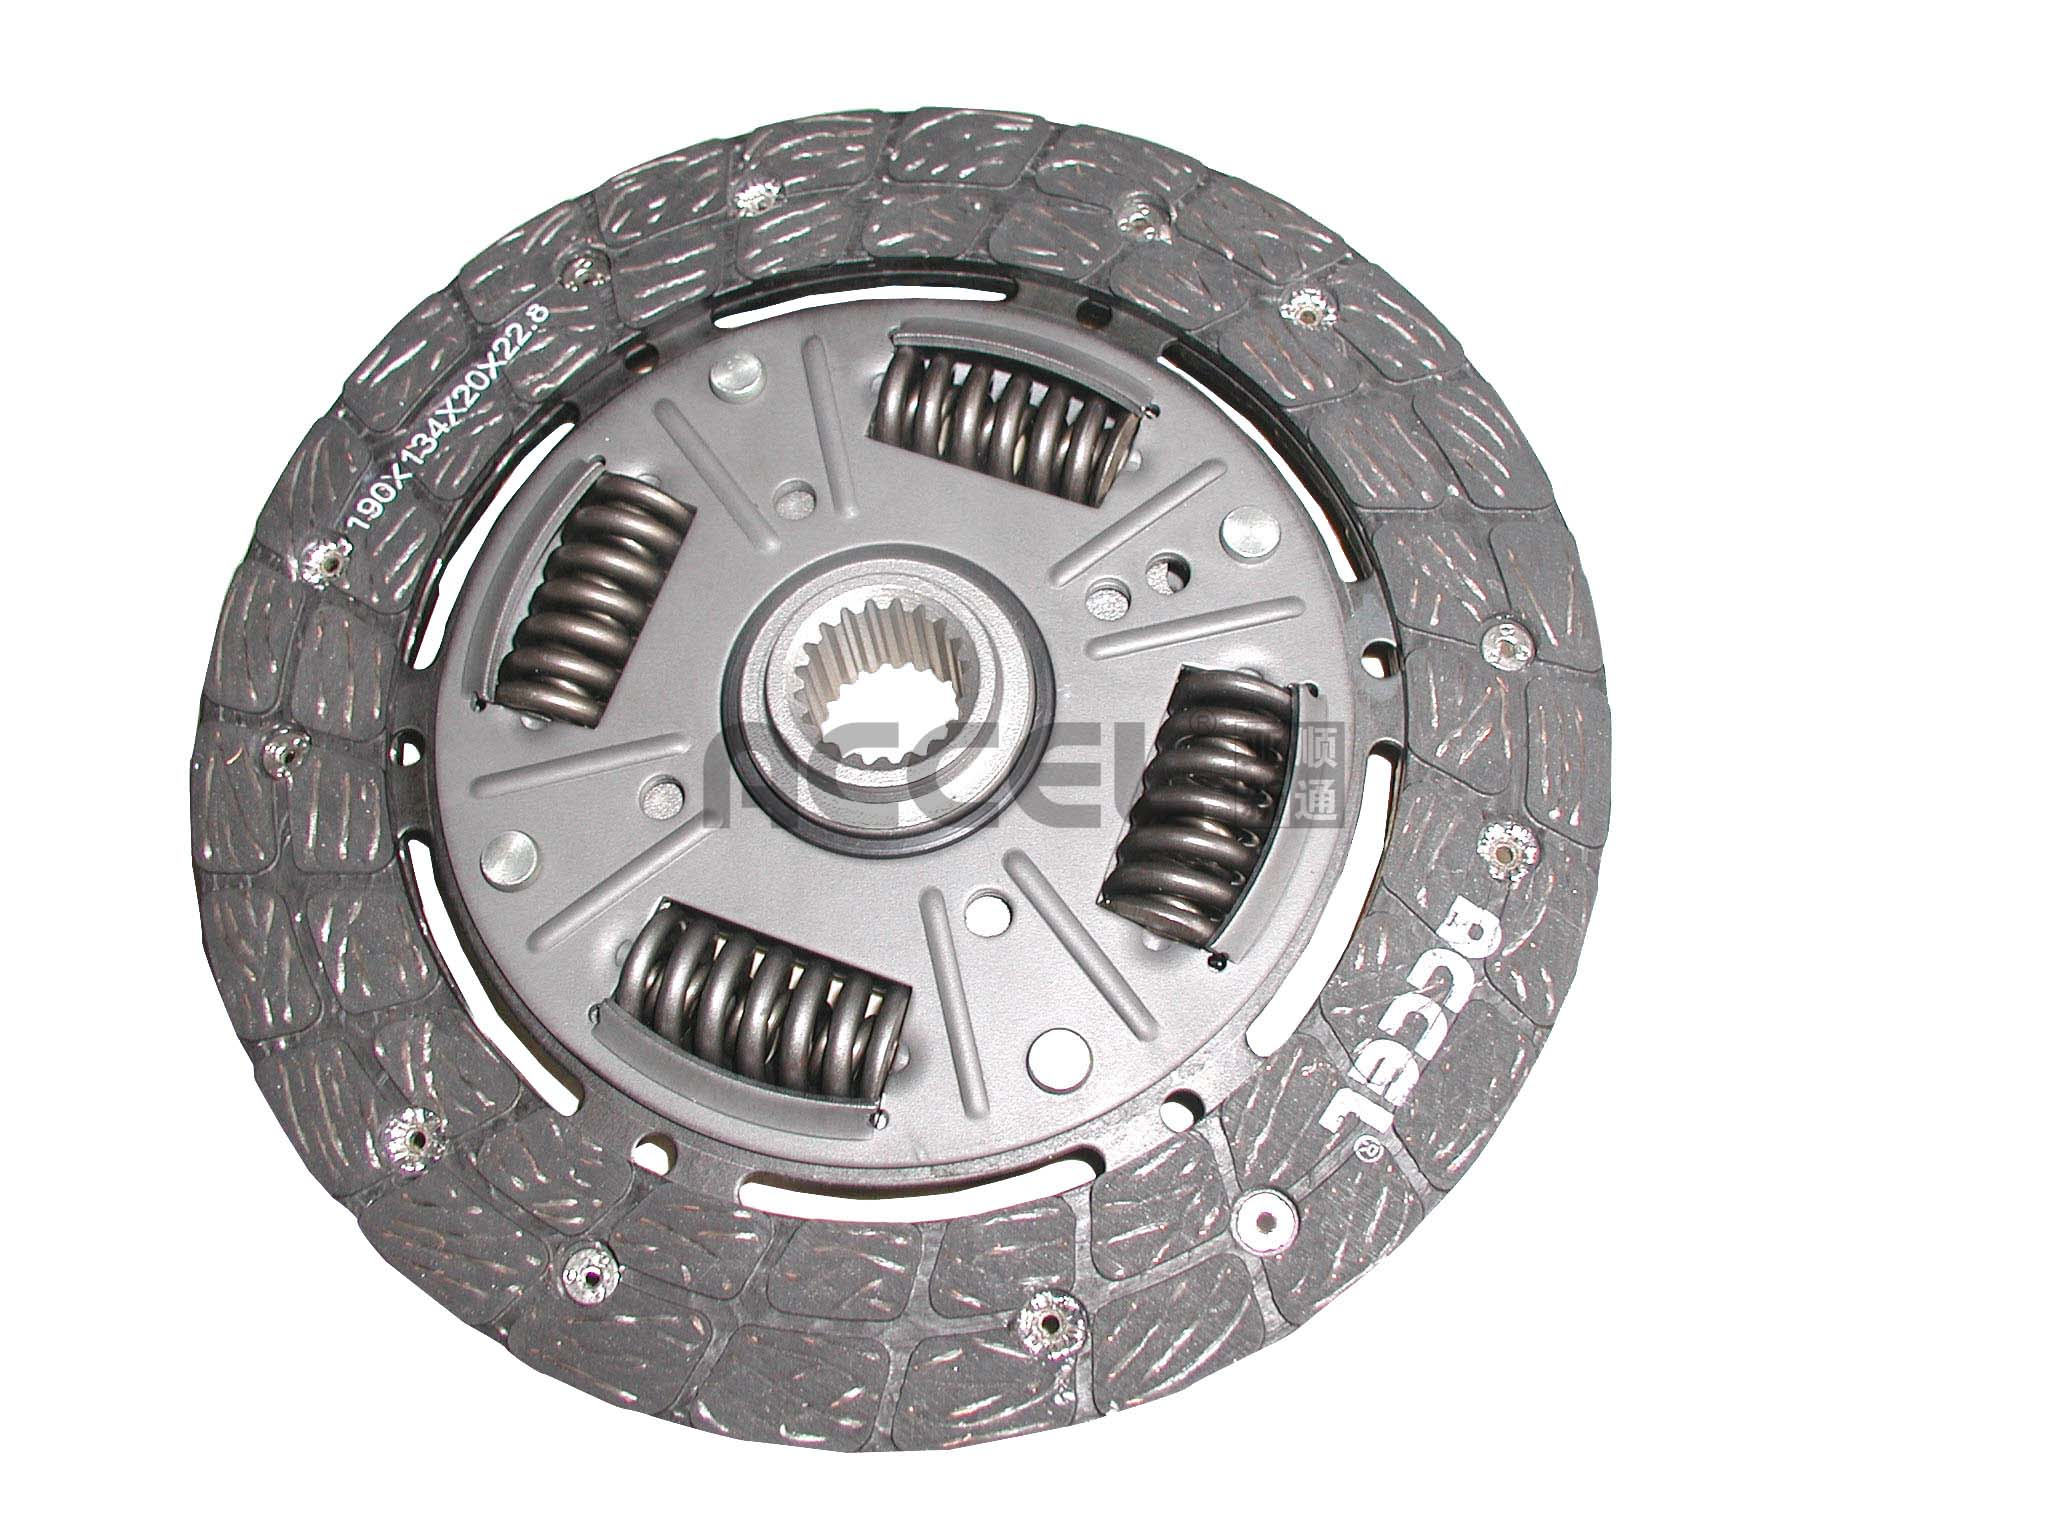 Clutch Disc/OE:1861 696 146/190*135*20*22.8/ARS-004/RUSSIA Car/CL1015